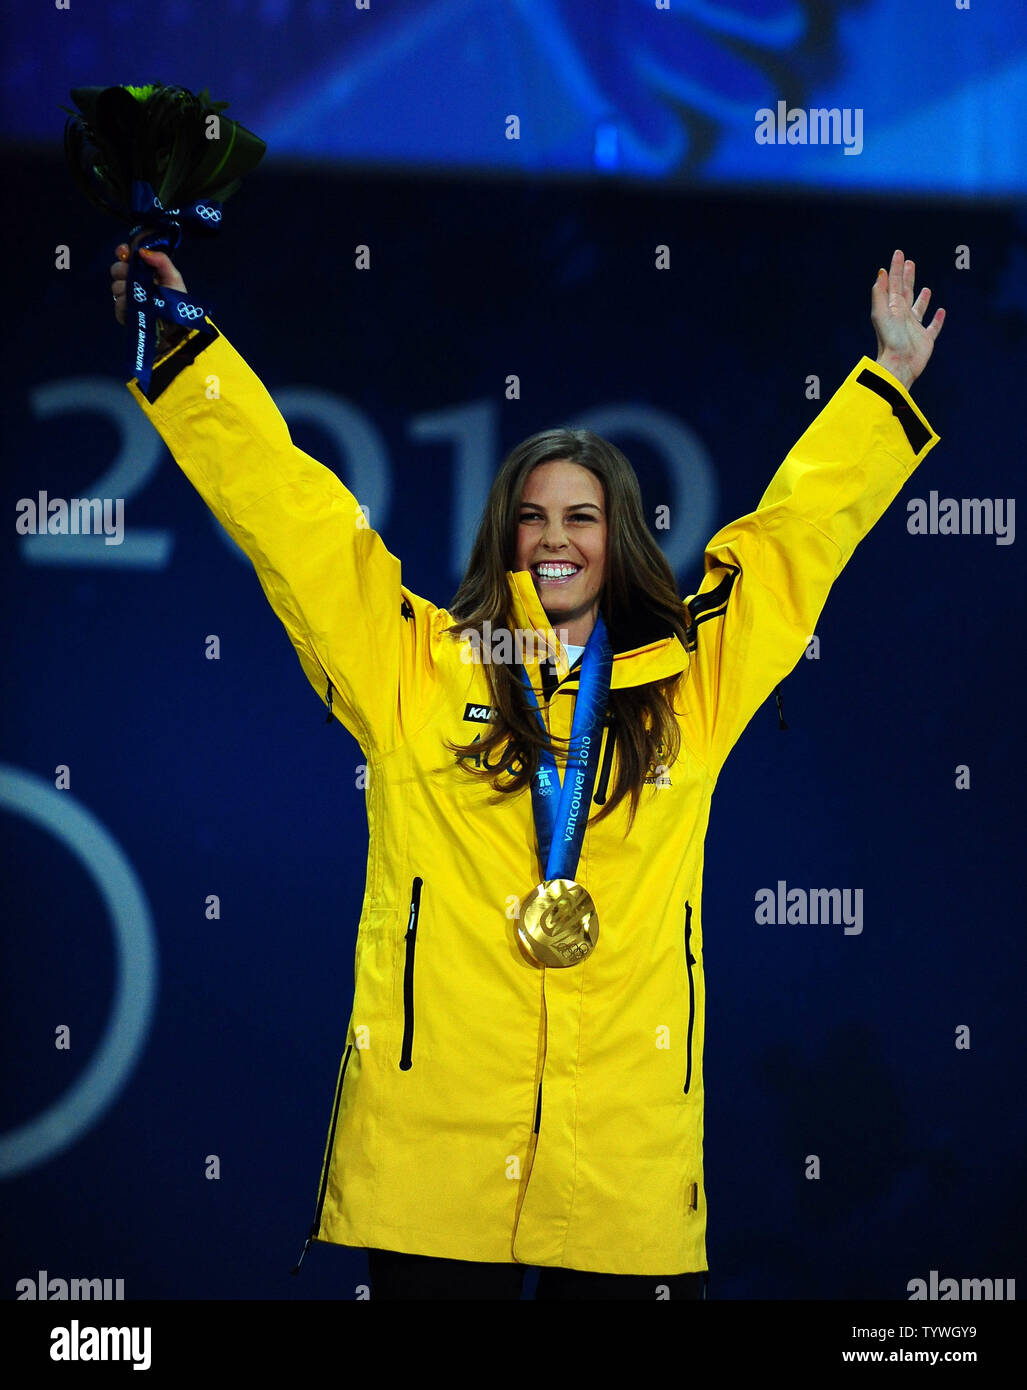 Torah Bright of Australia (gold) celebrates the medal she earned for snowboard ladies' halfpipe at BC Place in Vancouver, Canada, during the 2010 Winter Olympics on February 19, 2010.     UPI/Roger L. Wollenberg - Stock Image